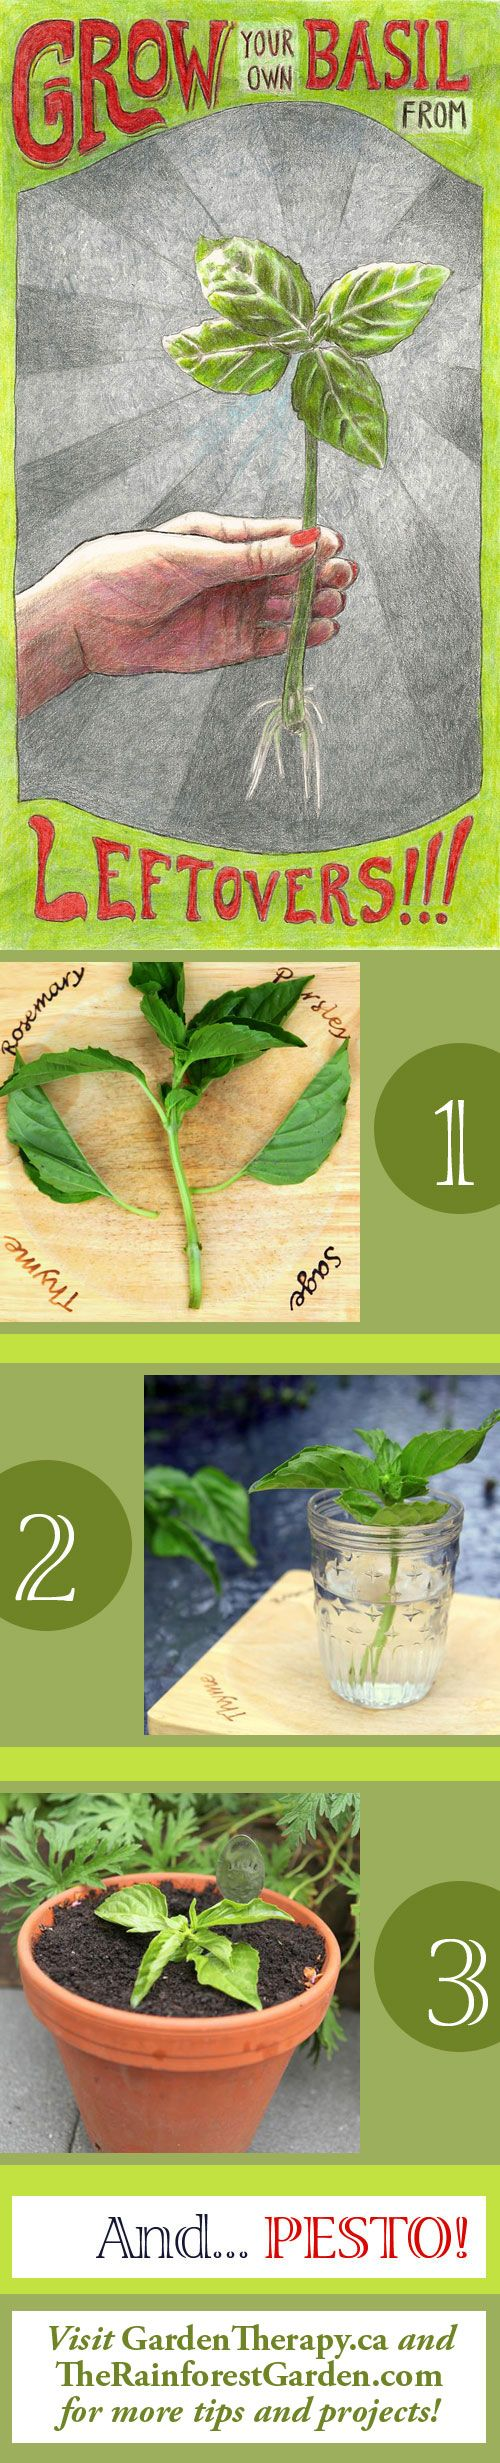 How to Grow Basil from Cuttings -: Herbs Basil, Gardens Therapy, Gardens Ideas, Growing Basil From Cut, Herbs Gardens, Cut Gardens, Growing Herbs Cut, Gardens Herbs, Basil Plants